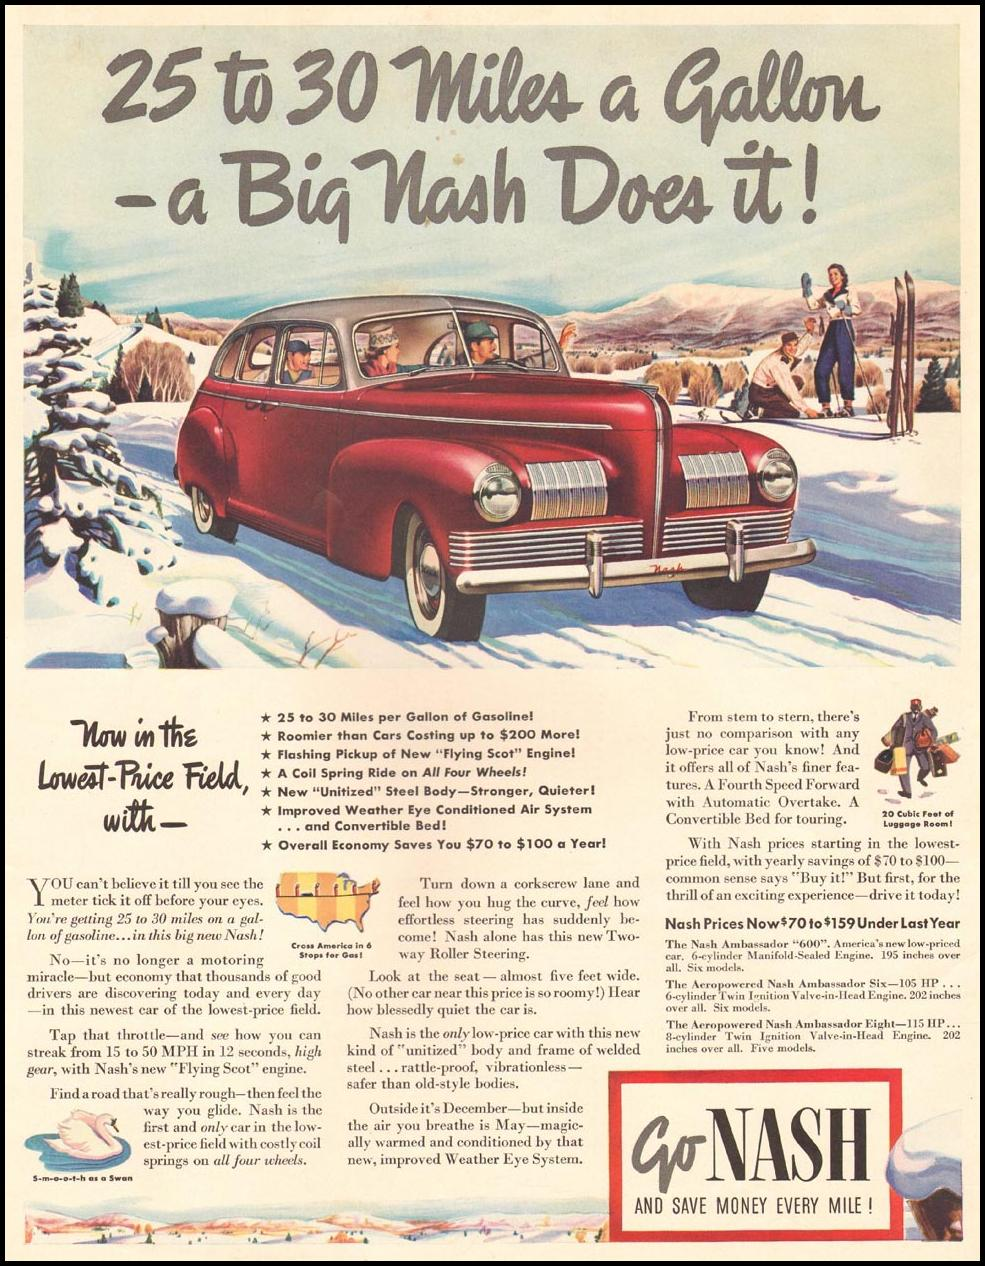 NASH AUTOMOBILES LIFE 12/16/1940 INSIDE FRONT